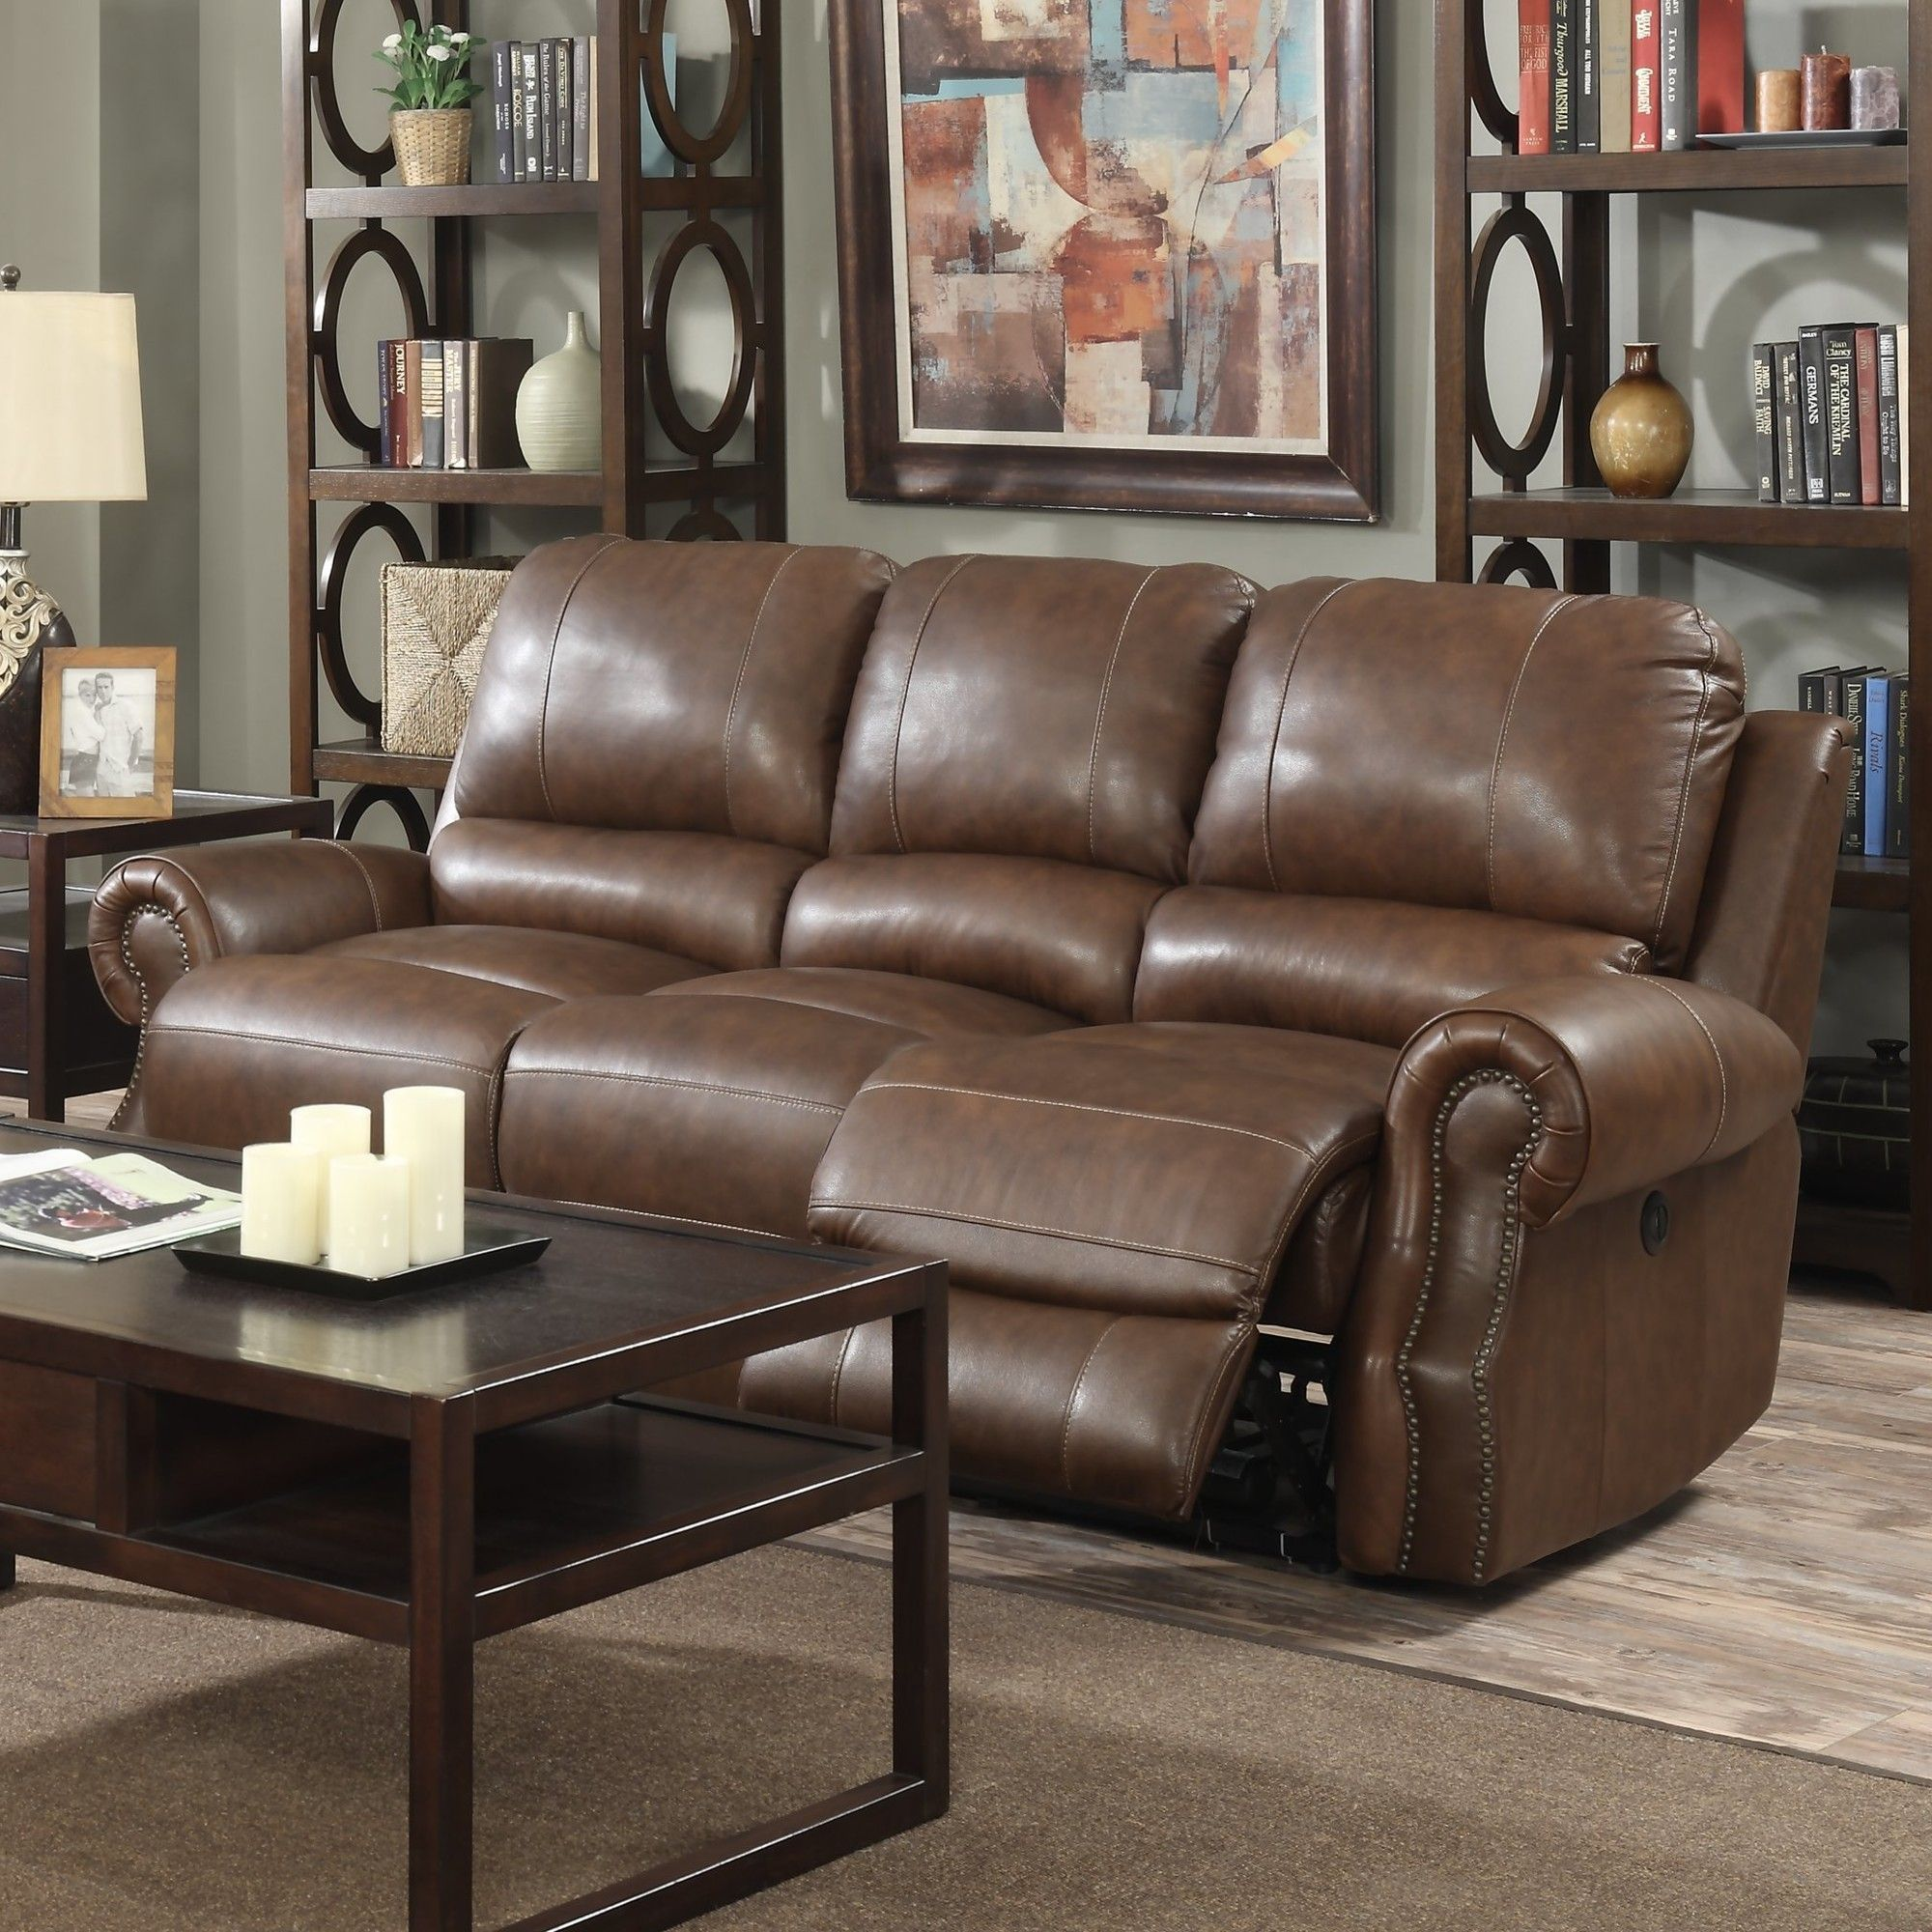 Awe Inspiring Crete Leather Reclining Sofa For The Home Leather Machost Co Dining Chair Design Ideas Machostcouk